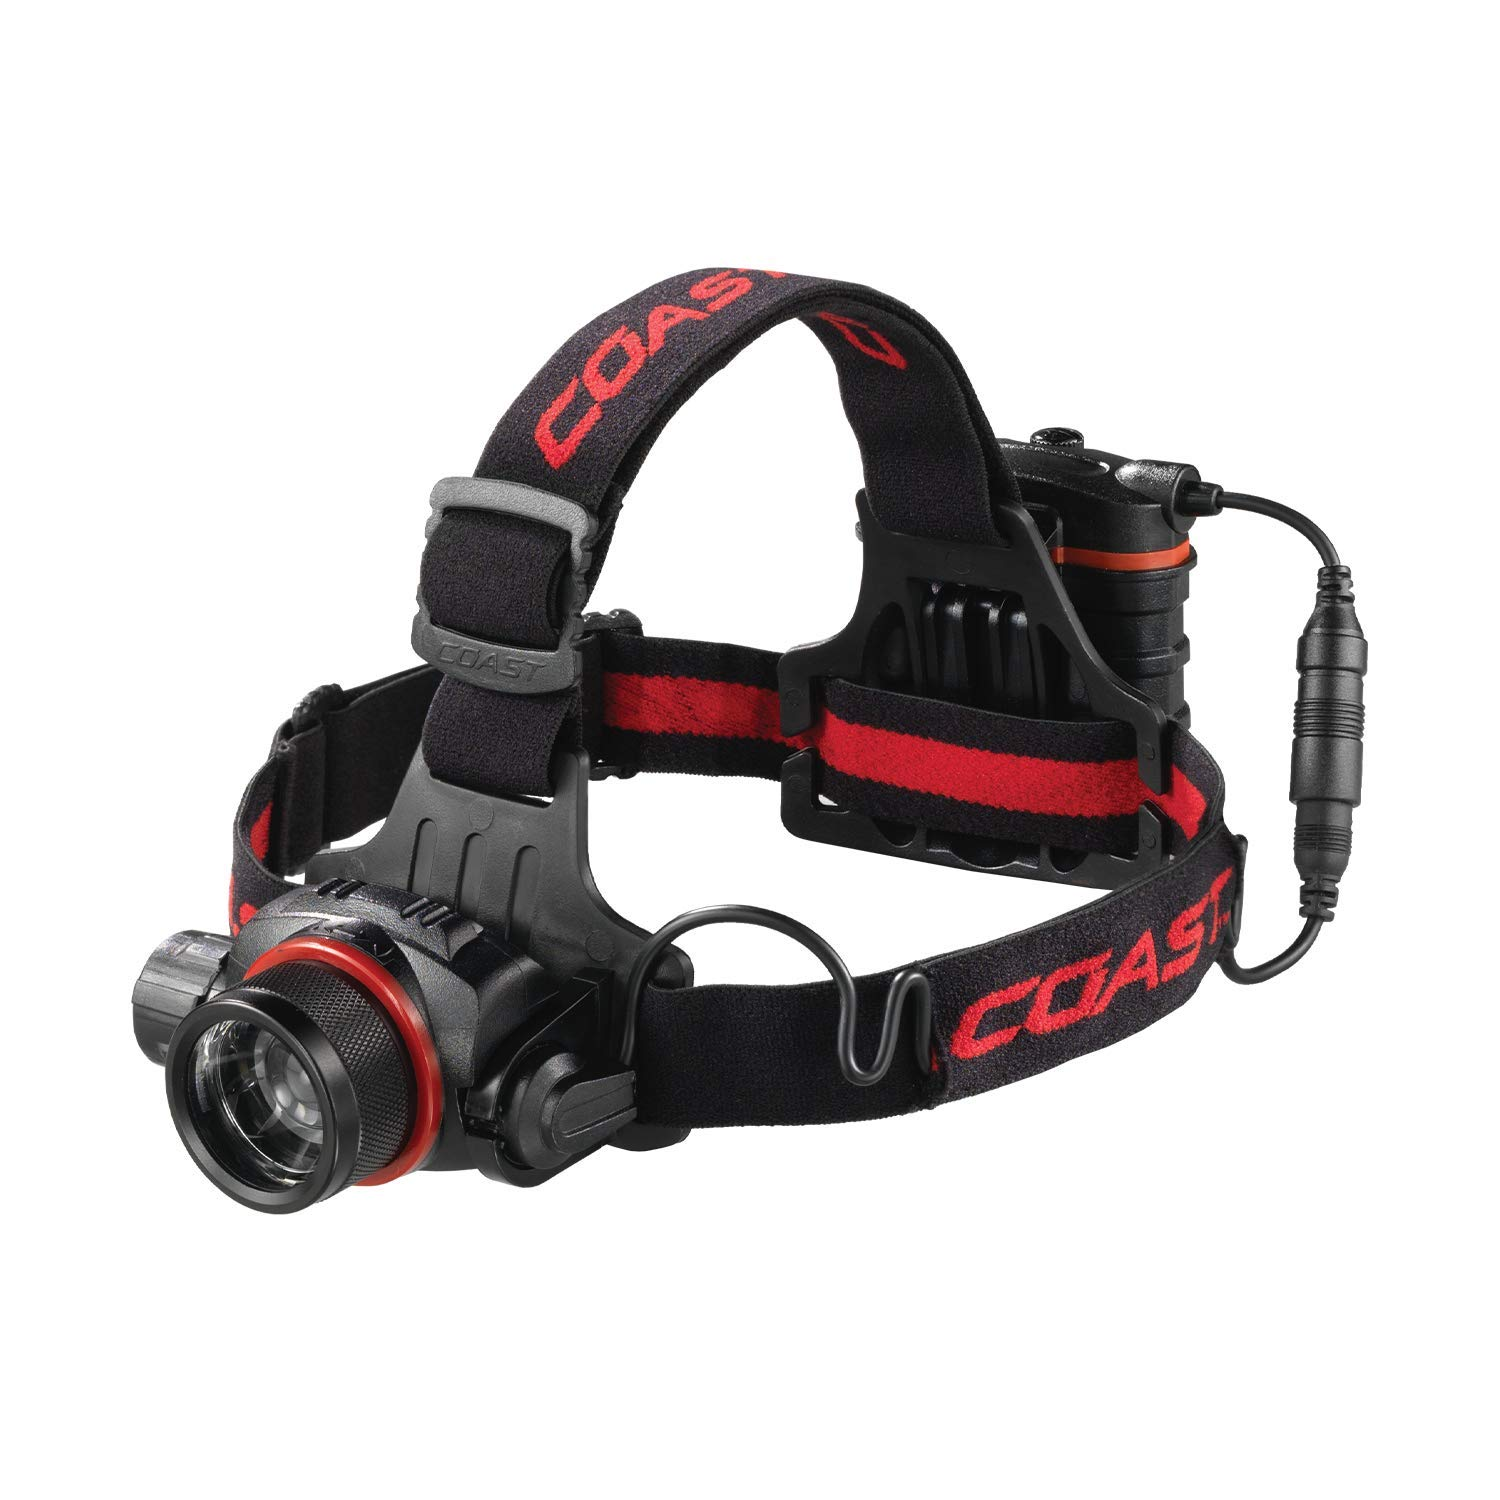 COAST HL8R 800 Lumen Rechargeable Pure Beam Focusing LED Headlamp by Coast